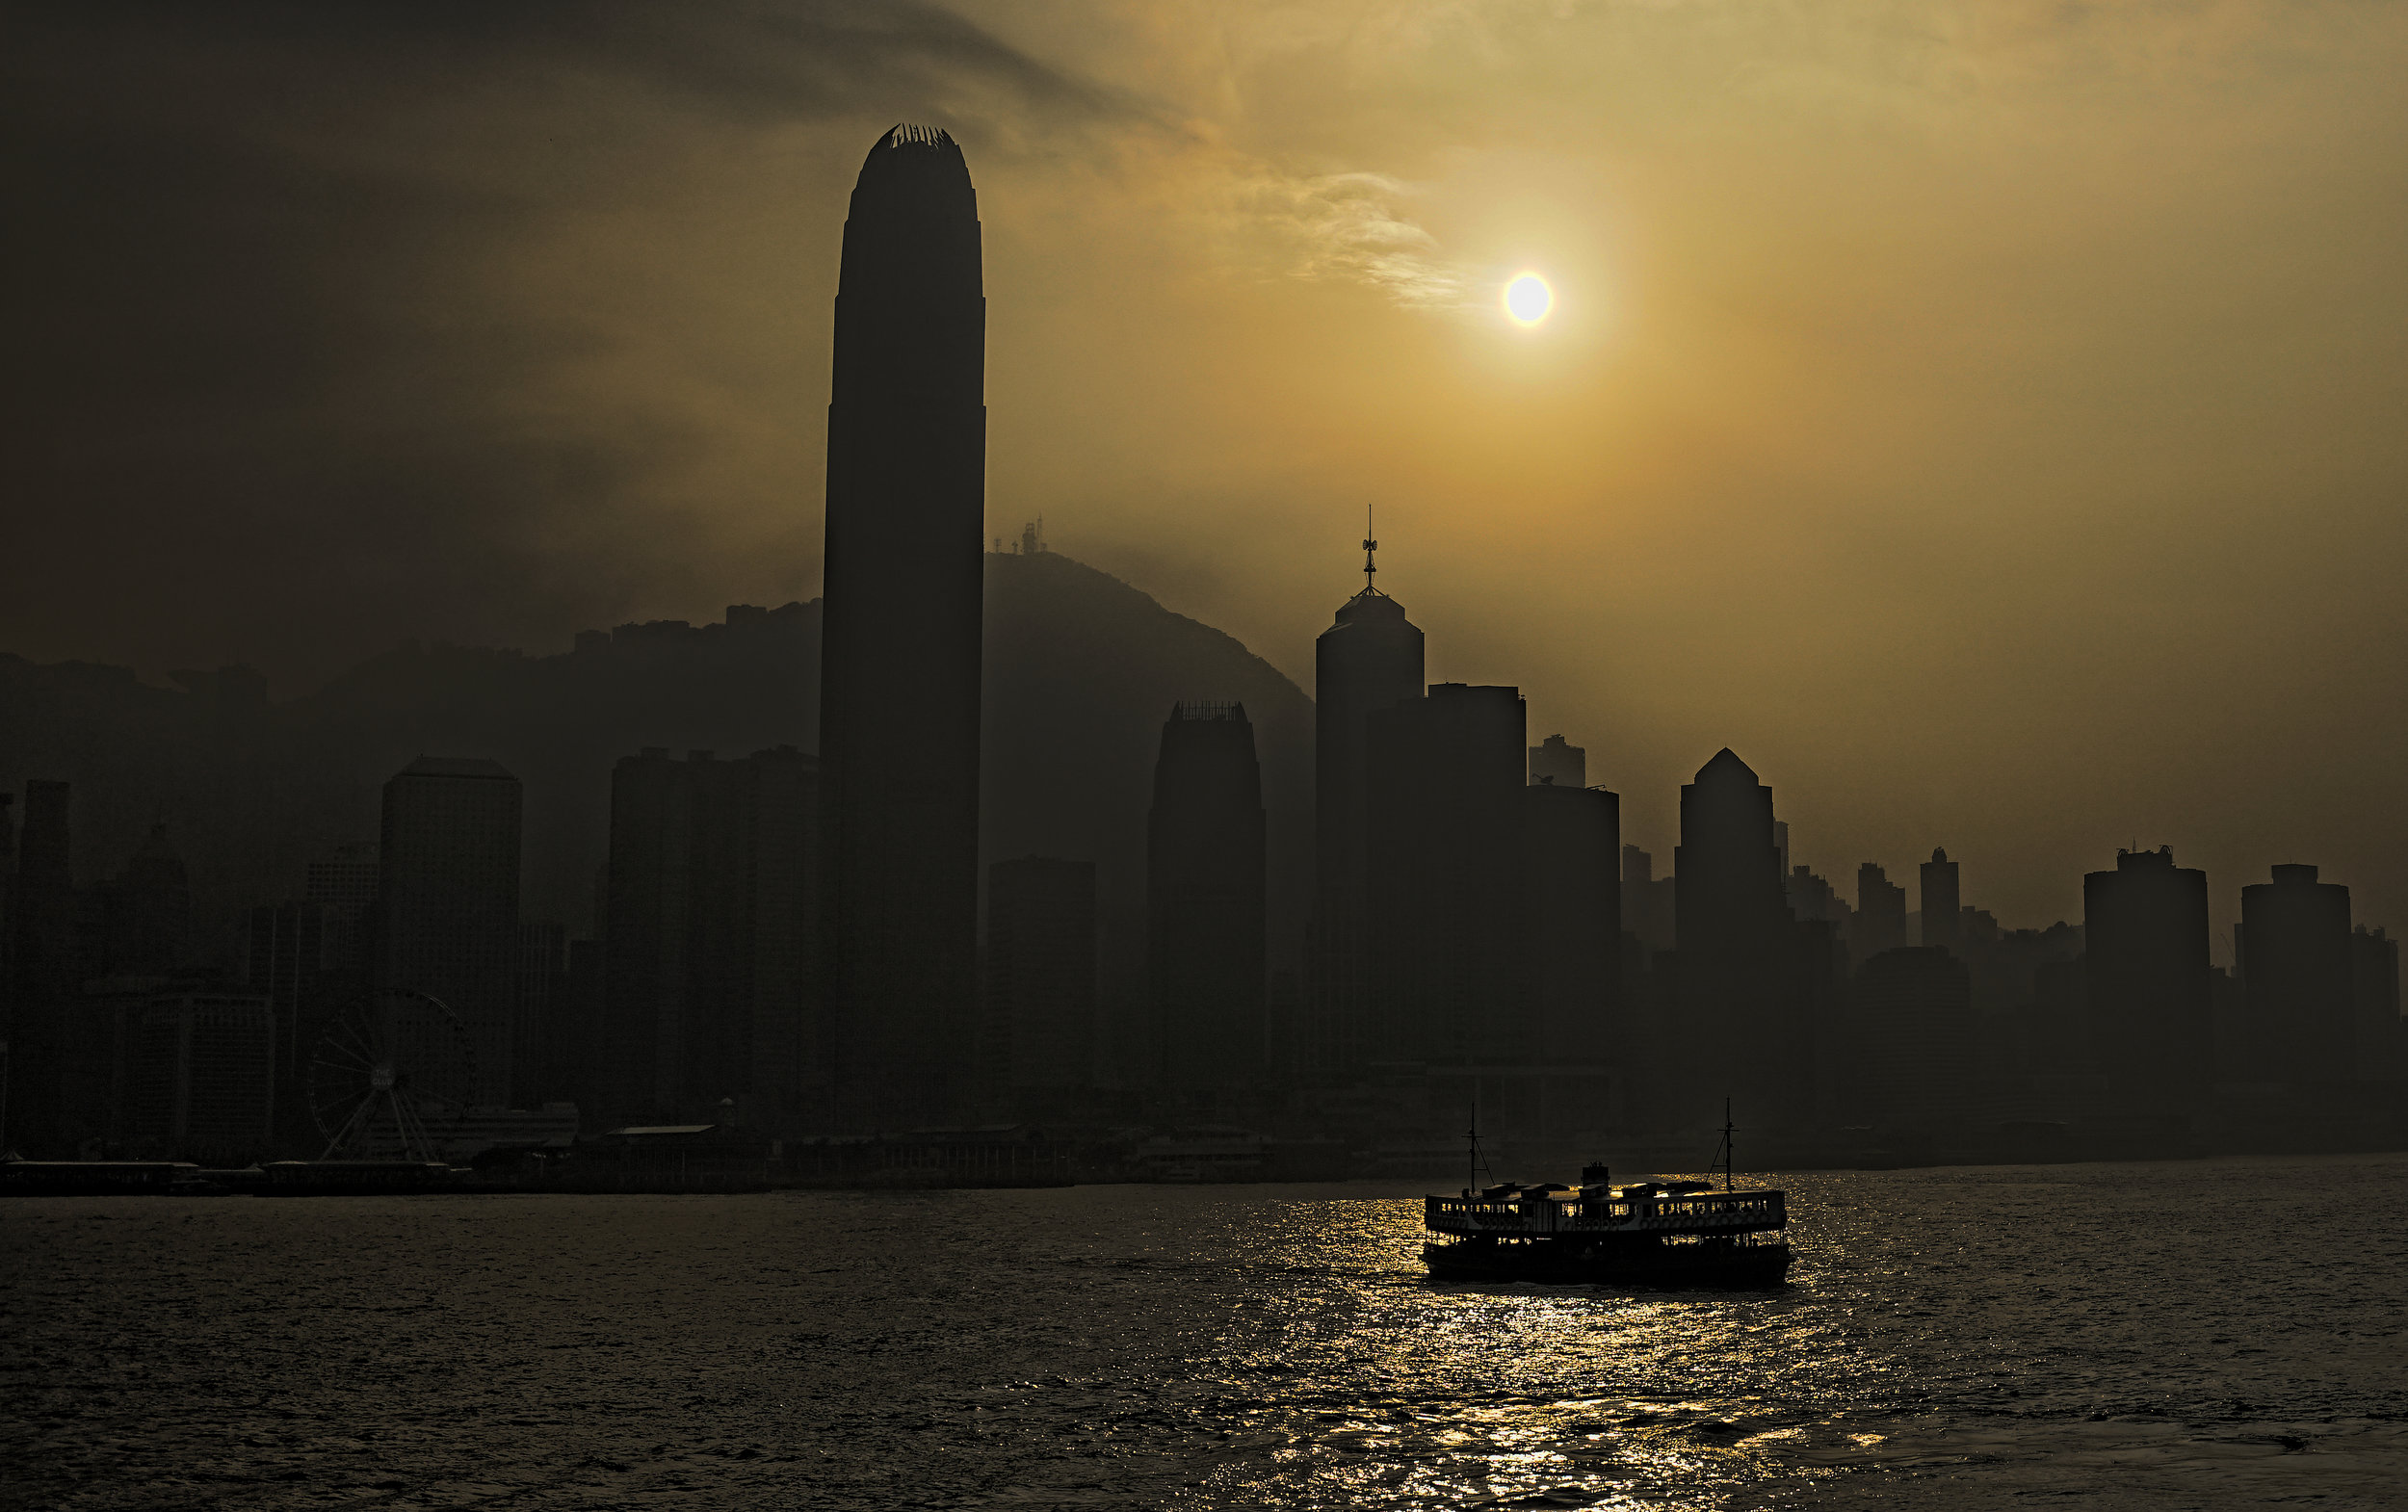 Hong Kong Airport Layover / Transit Tours -  Kill two birds with one stone, take a trip on the iconic Star Ferry whilst being wowed by the amazing Hong Kong skyline... just do it!!